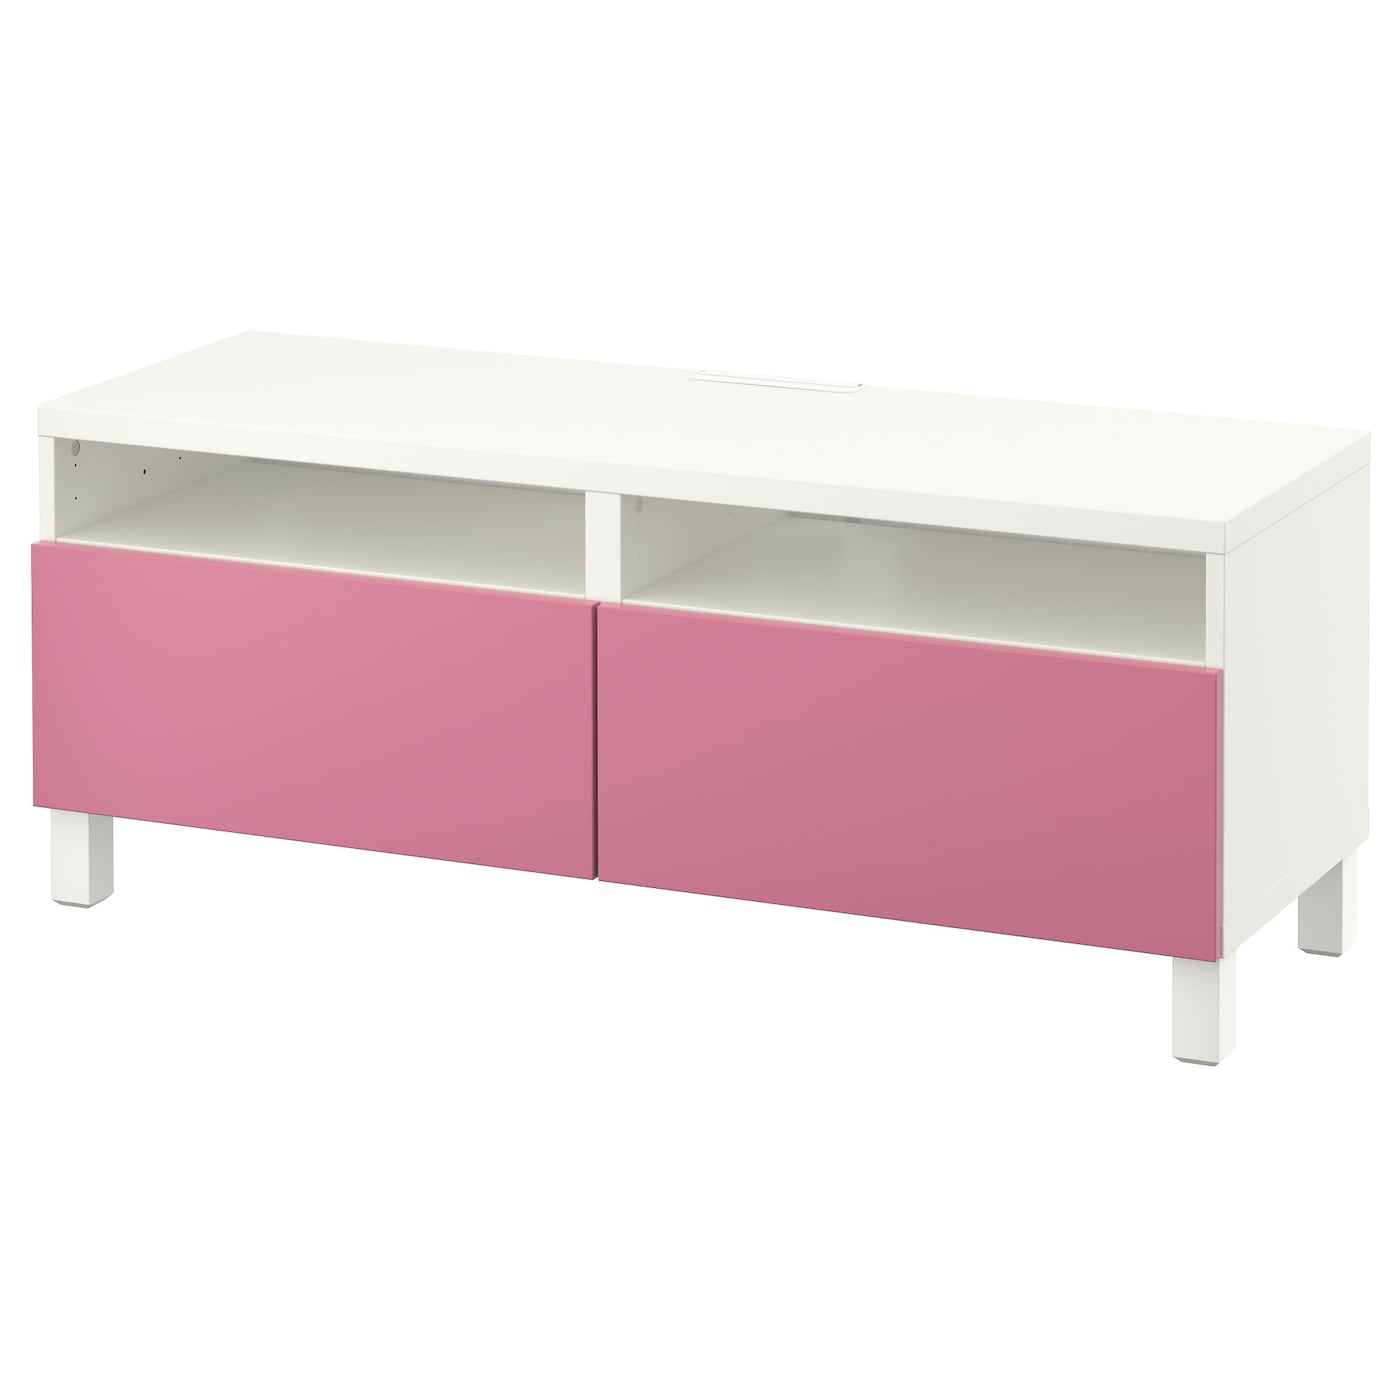 Best Tv Bench With Drawers White Lappviken Pink 120x40x48 Cm Ikea